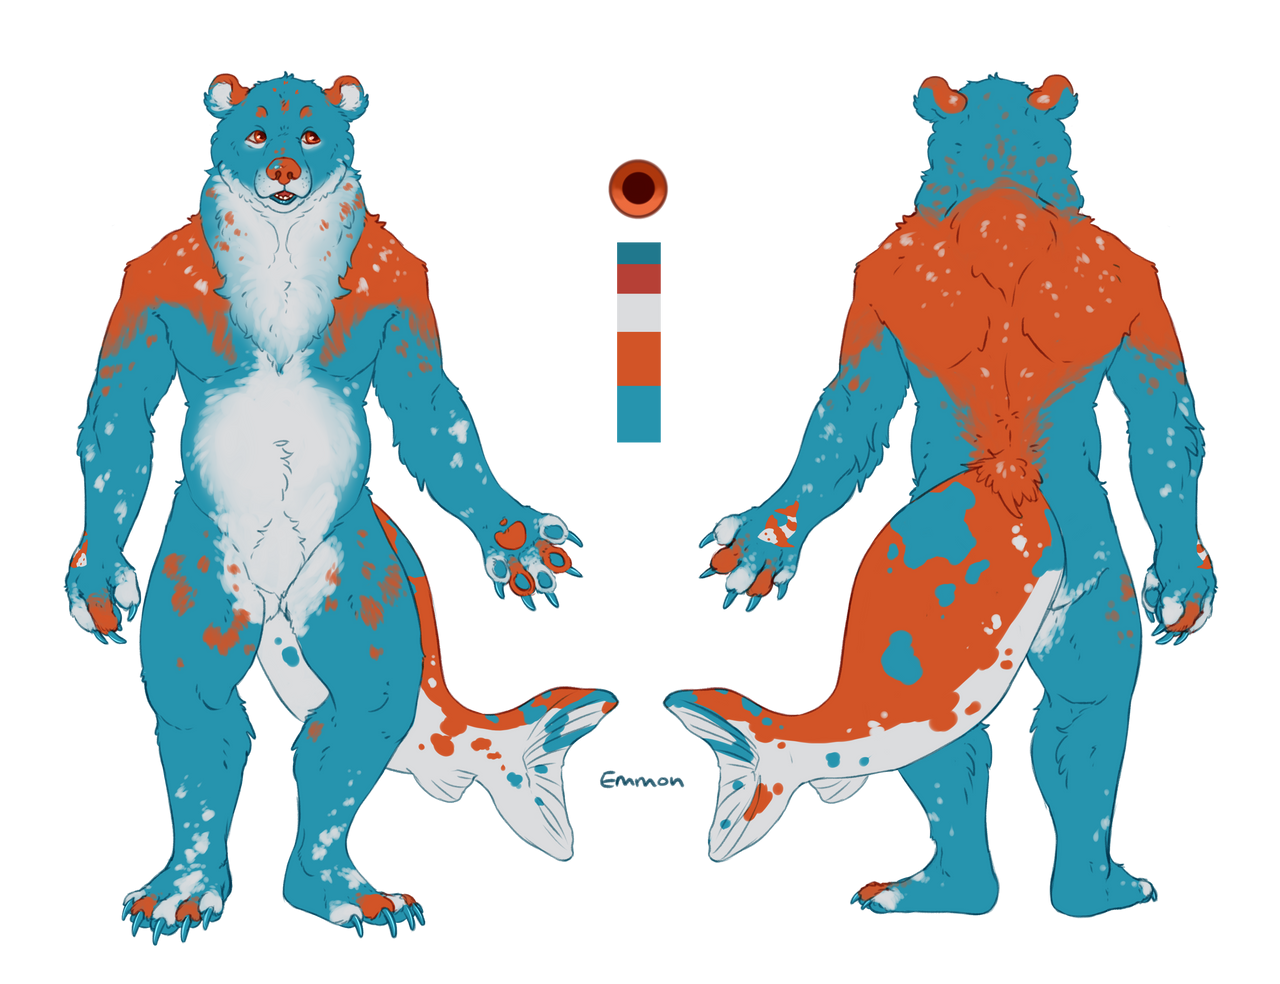 commission___fishbear_by_emmonarts_de0kf1i-fullview.png